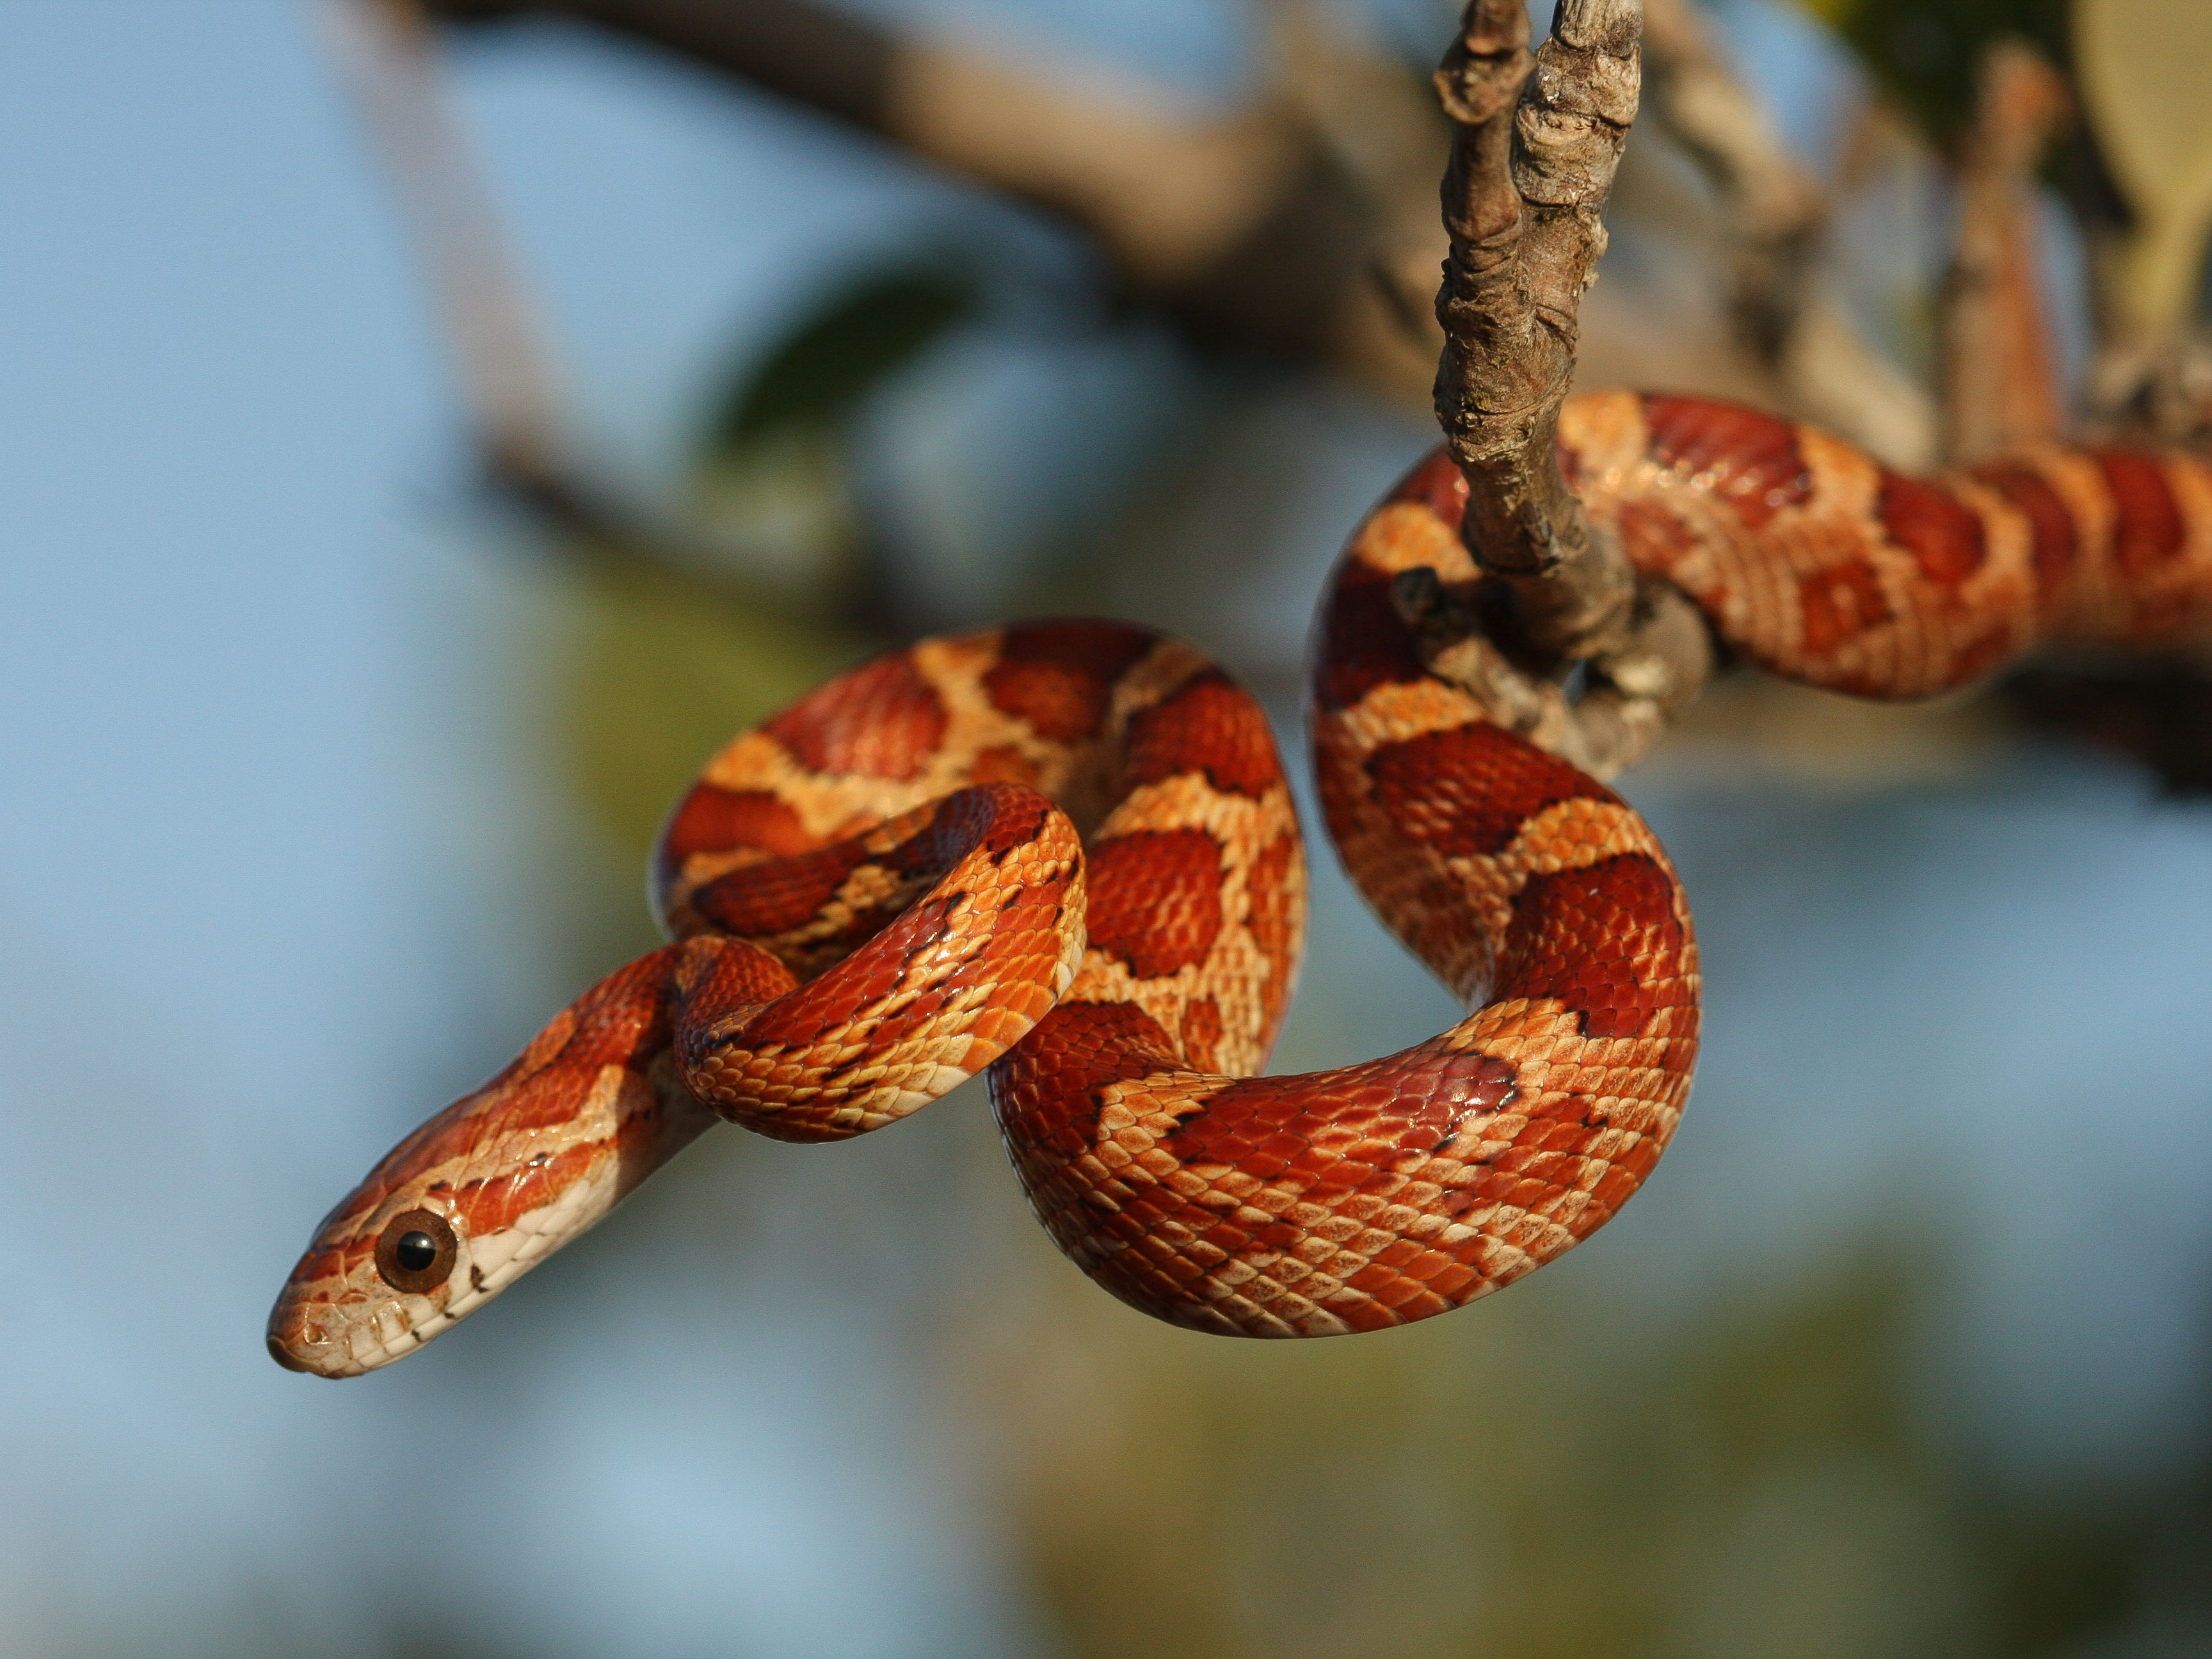 A Guide To Caring For Pet Corn Snakes